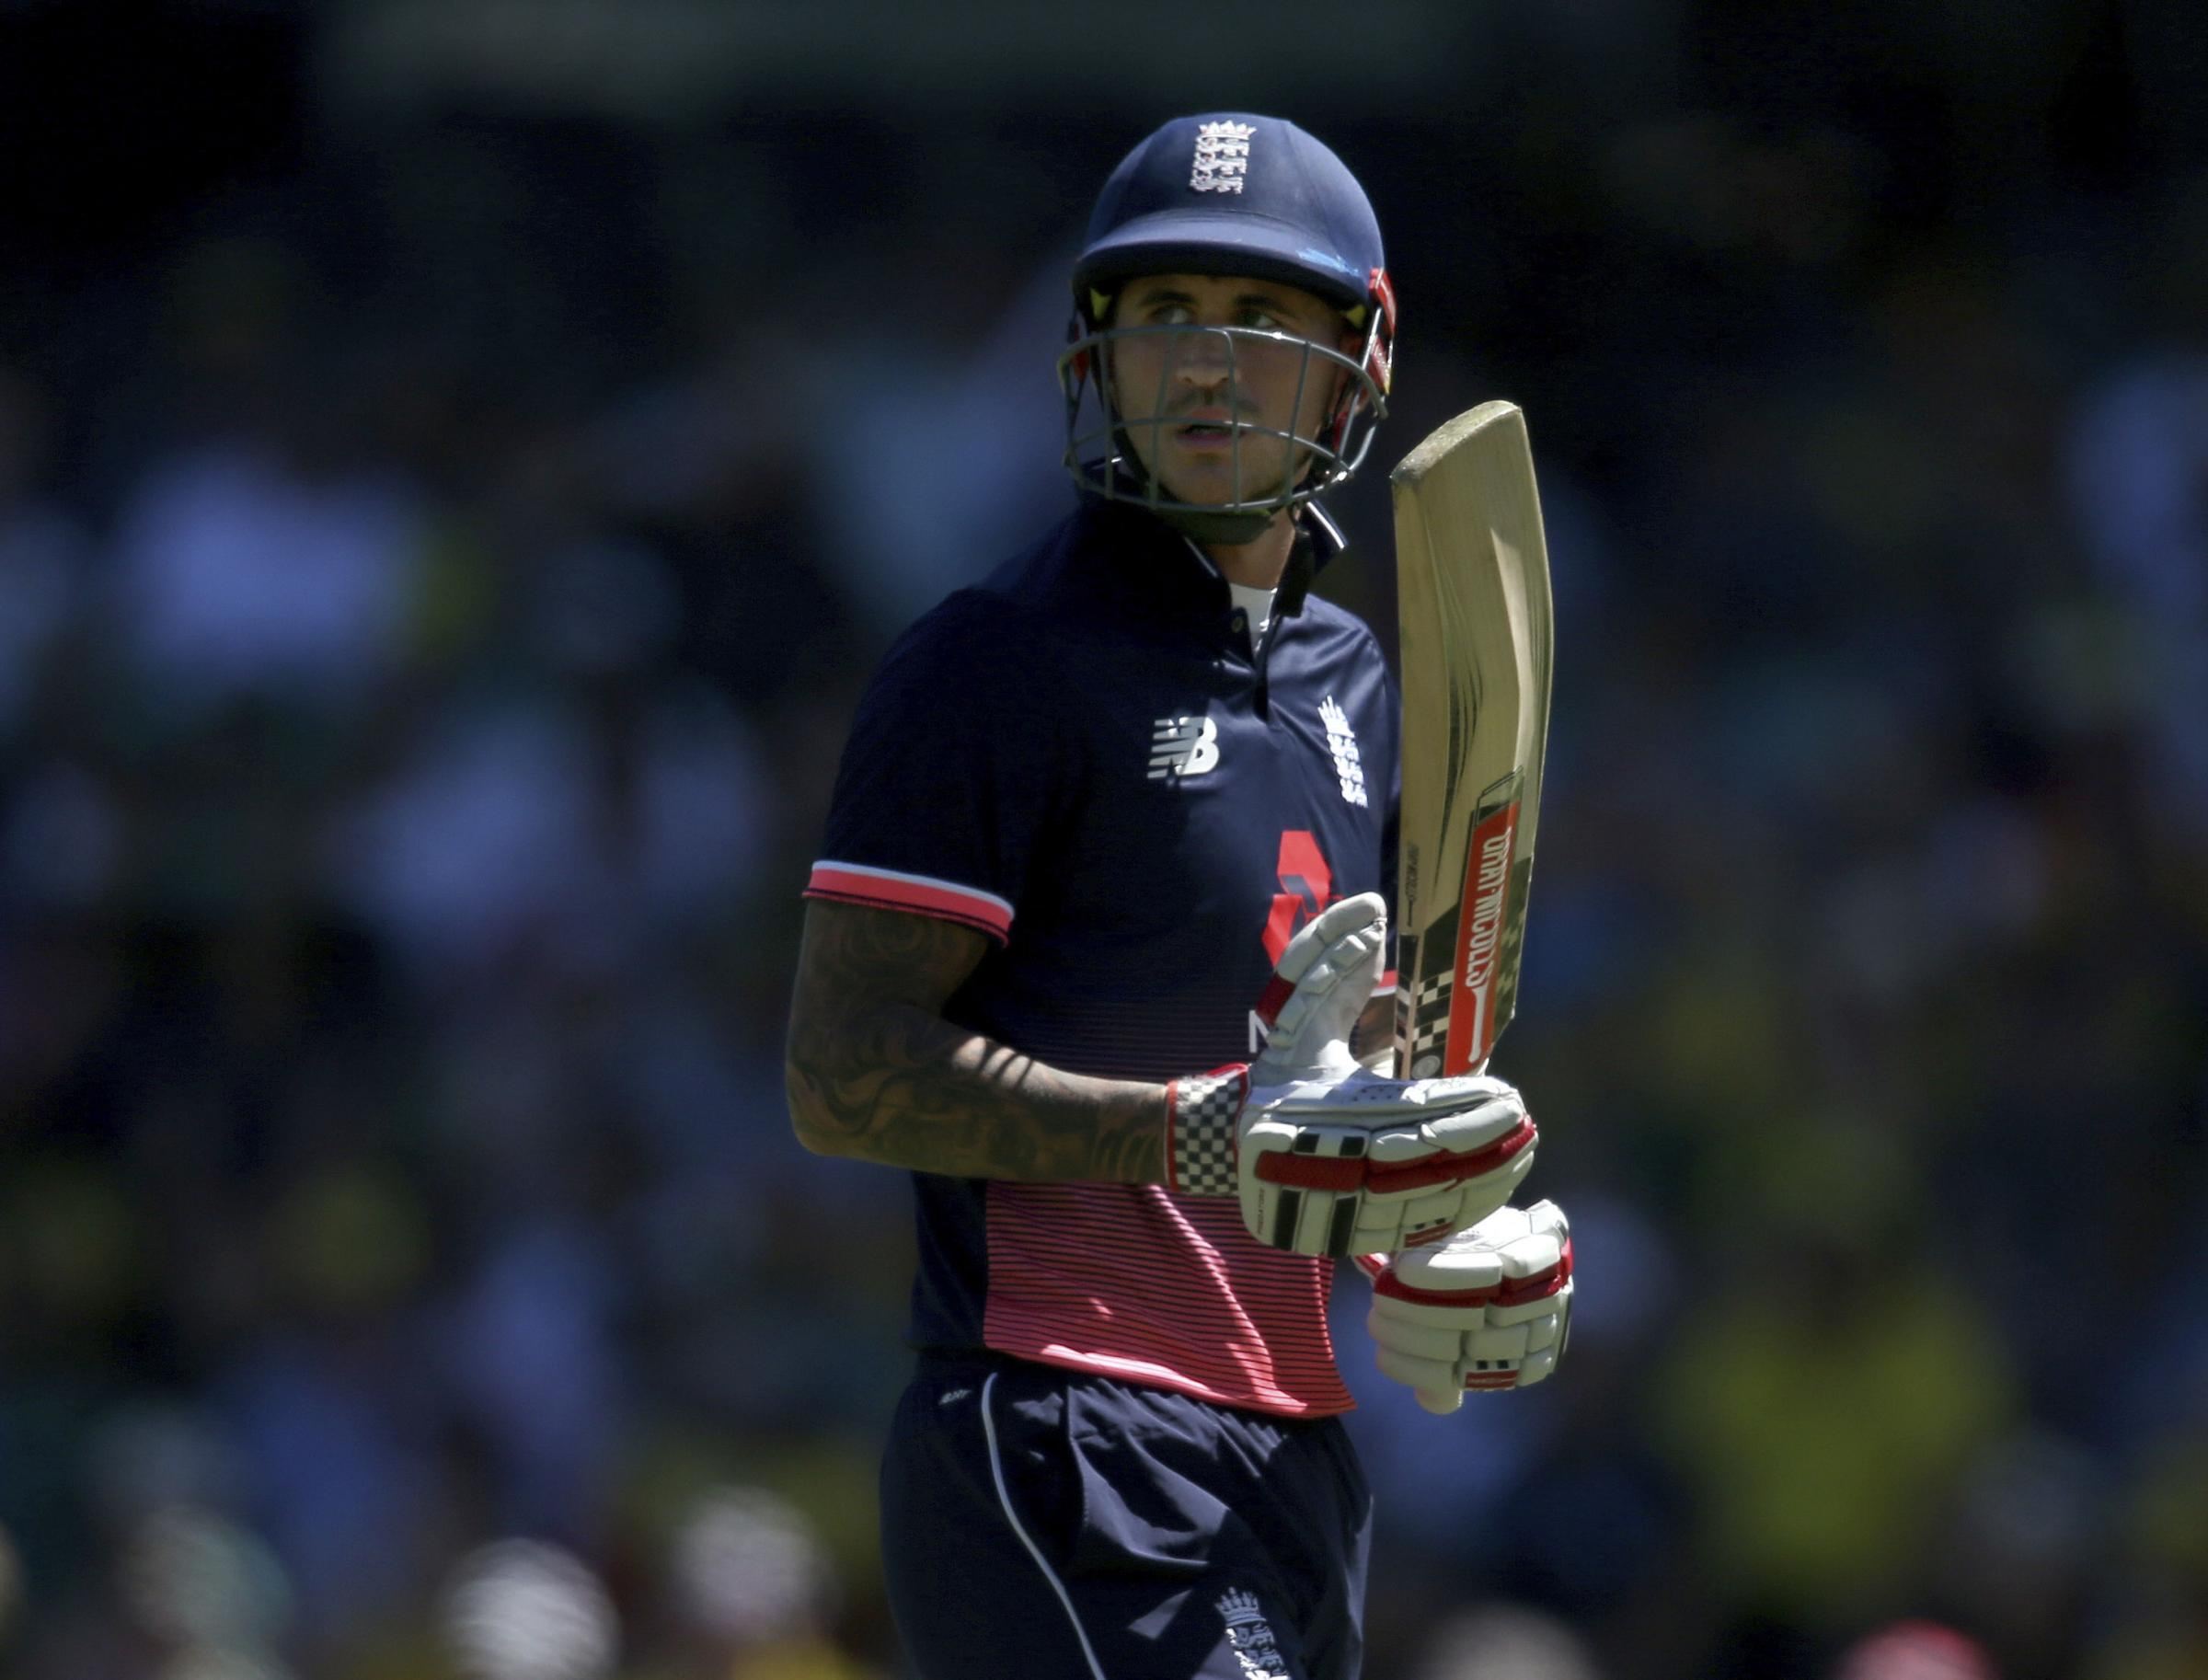 Hales was in great form but England were narrowly beaten